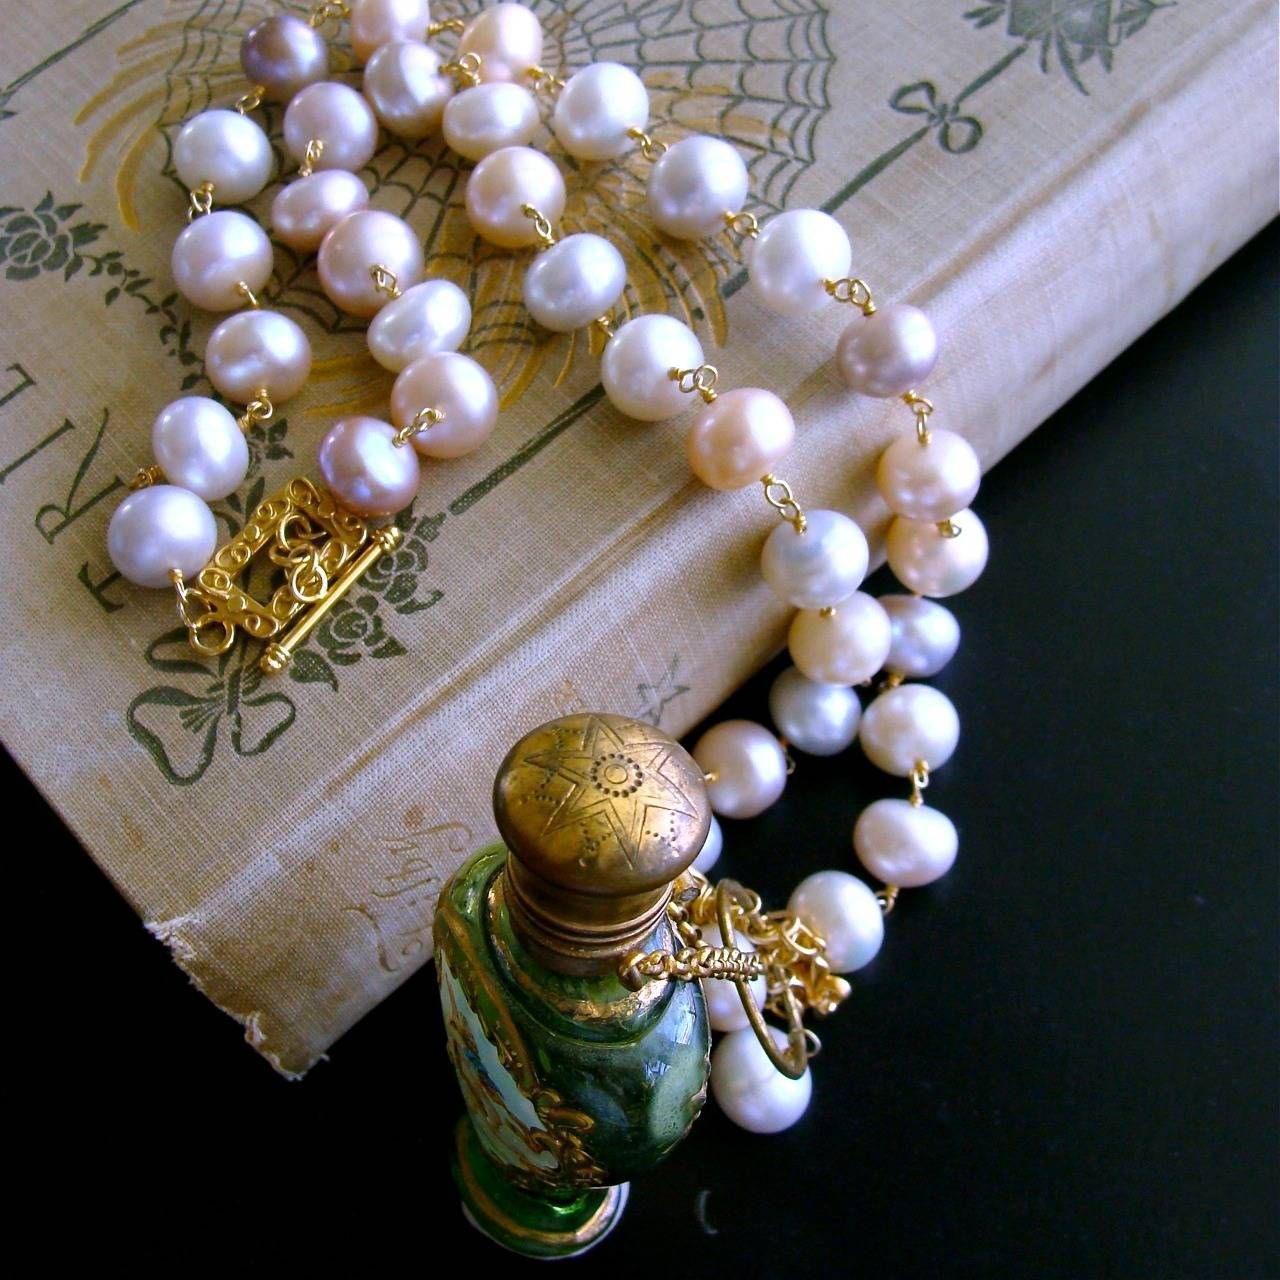 Cherub Chatelaine Scent Bottle Pink Baroque Pearls Necklace 9